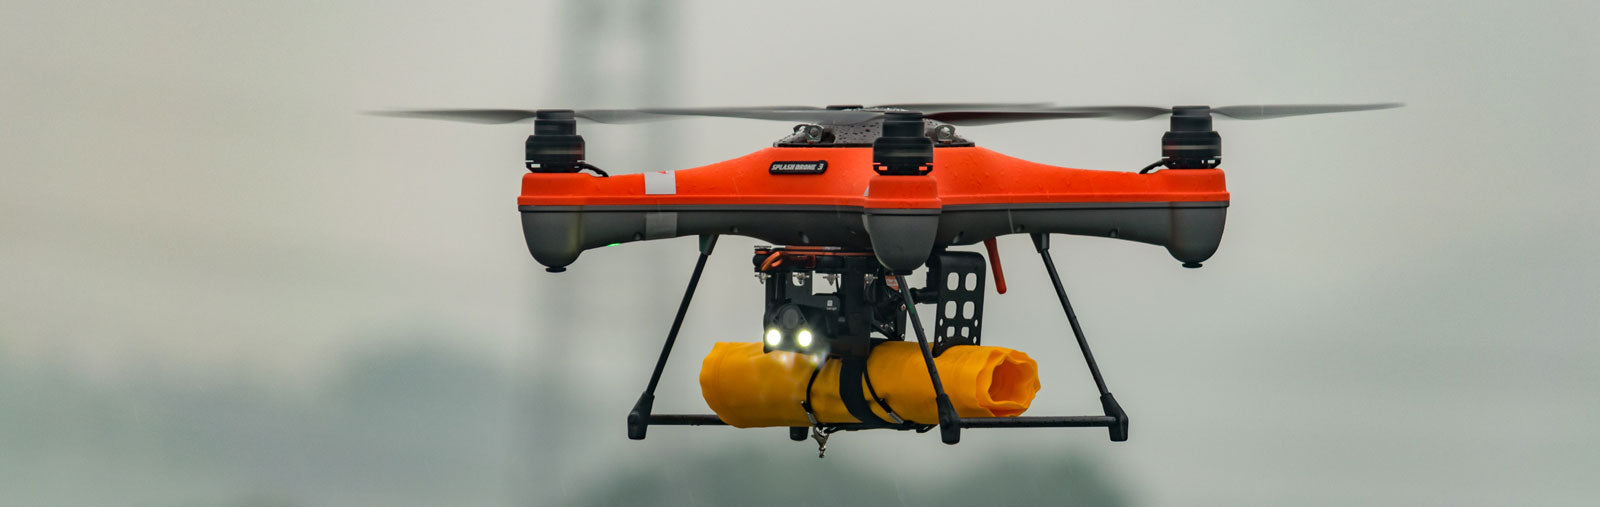 Waterproof SAR Drone